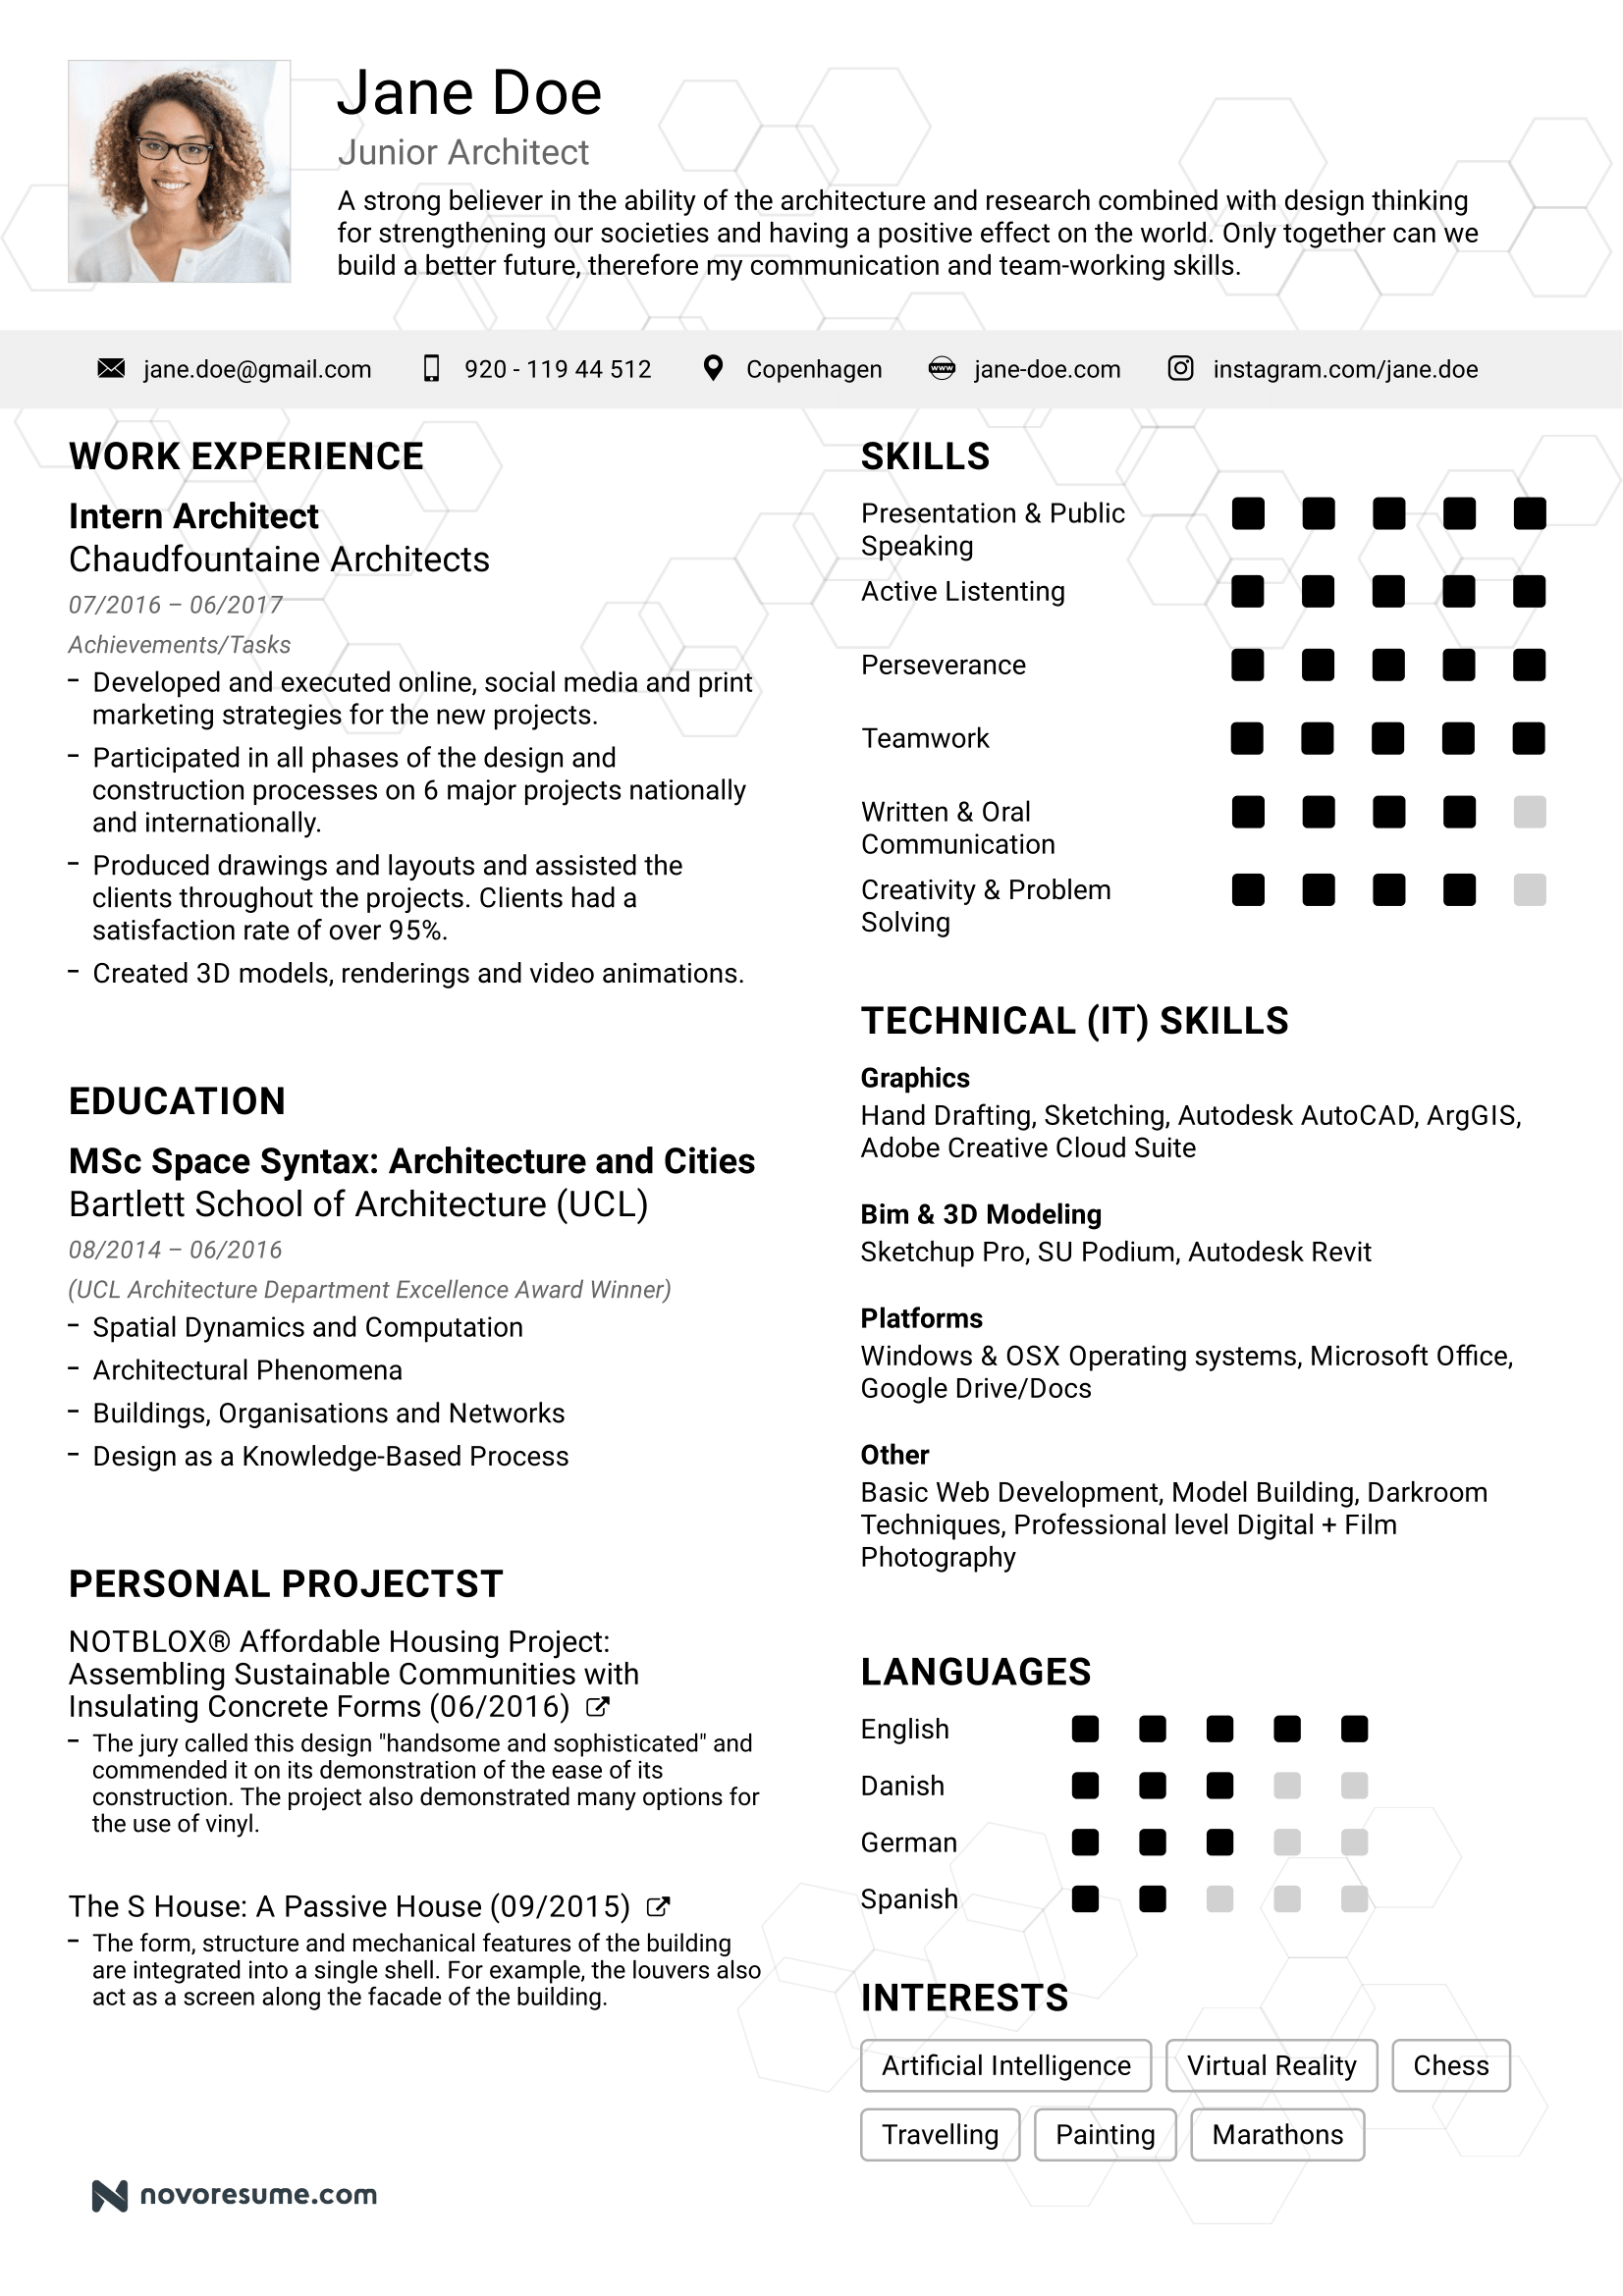 Full Resume Writing Guide And Resume Example For An Architect